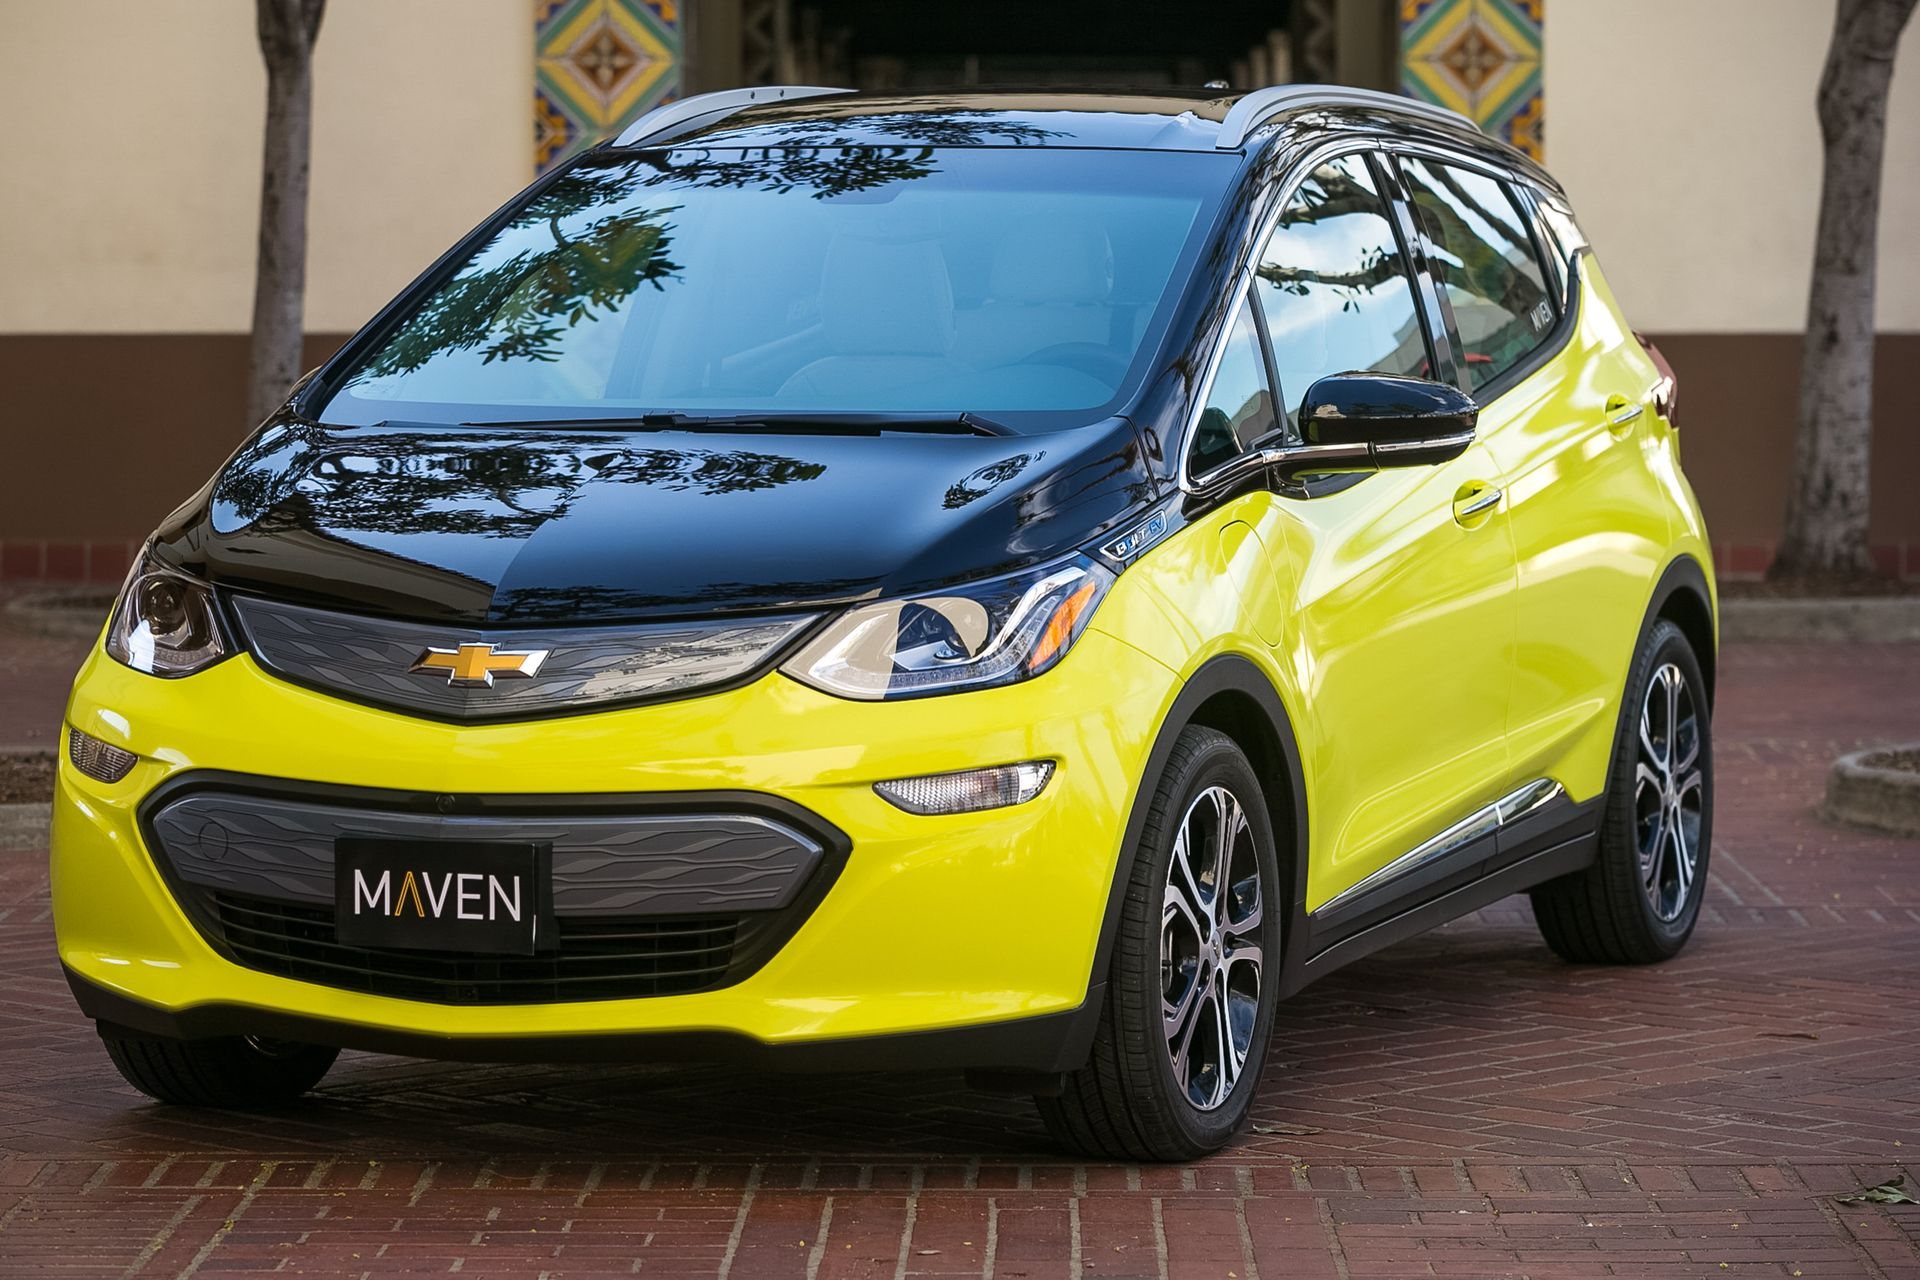 Maven, General Motors' personal mobility brand, announces it is adding more than 100 Chevrolet Bolt EVs in the Los Angeles market, allowing for nearly 250,000 all electric miles per month, Thursday, February 16, 2017 in Los Angeles, California. Maven is partnering with the City of Los Angeles to co-create transportation options that will enhance mobility, bring more electric vehicles, create jobs and ease parking and congestion. (Photo by Dan MacMedan for Maven)